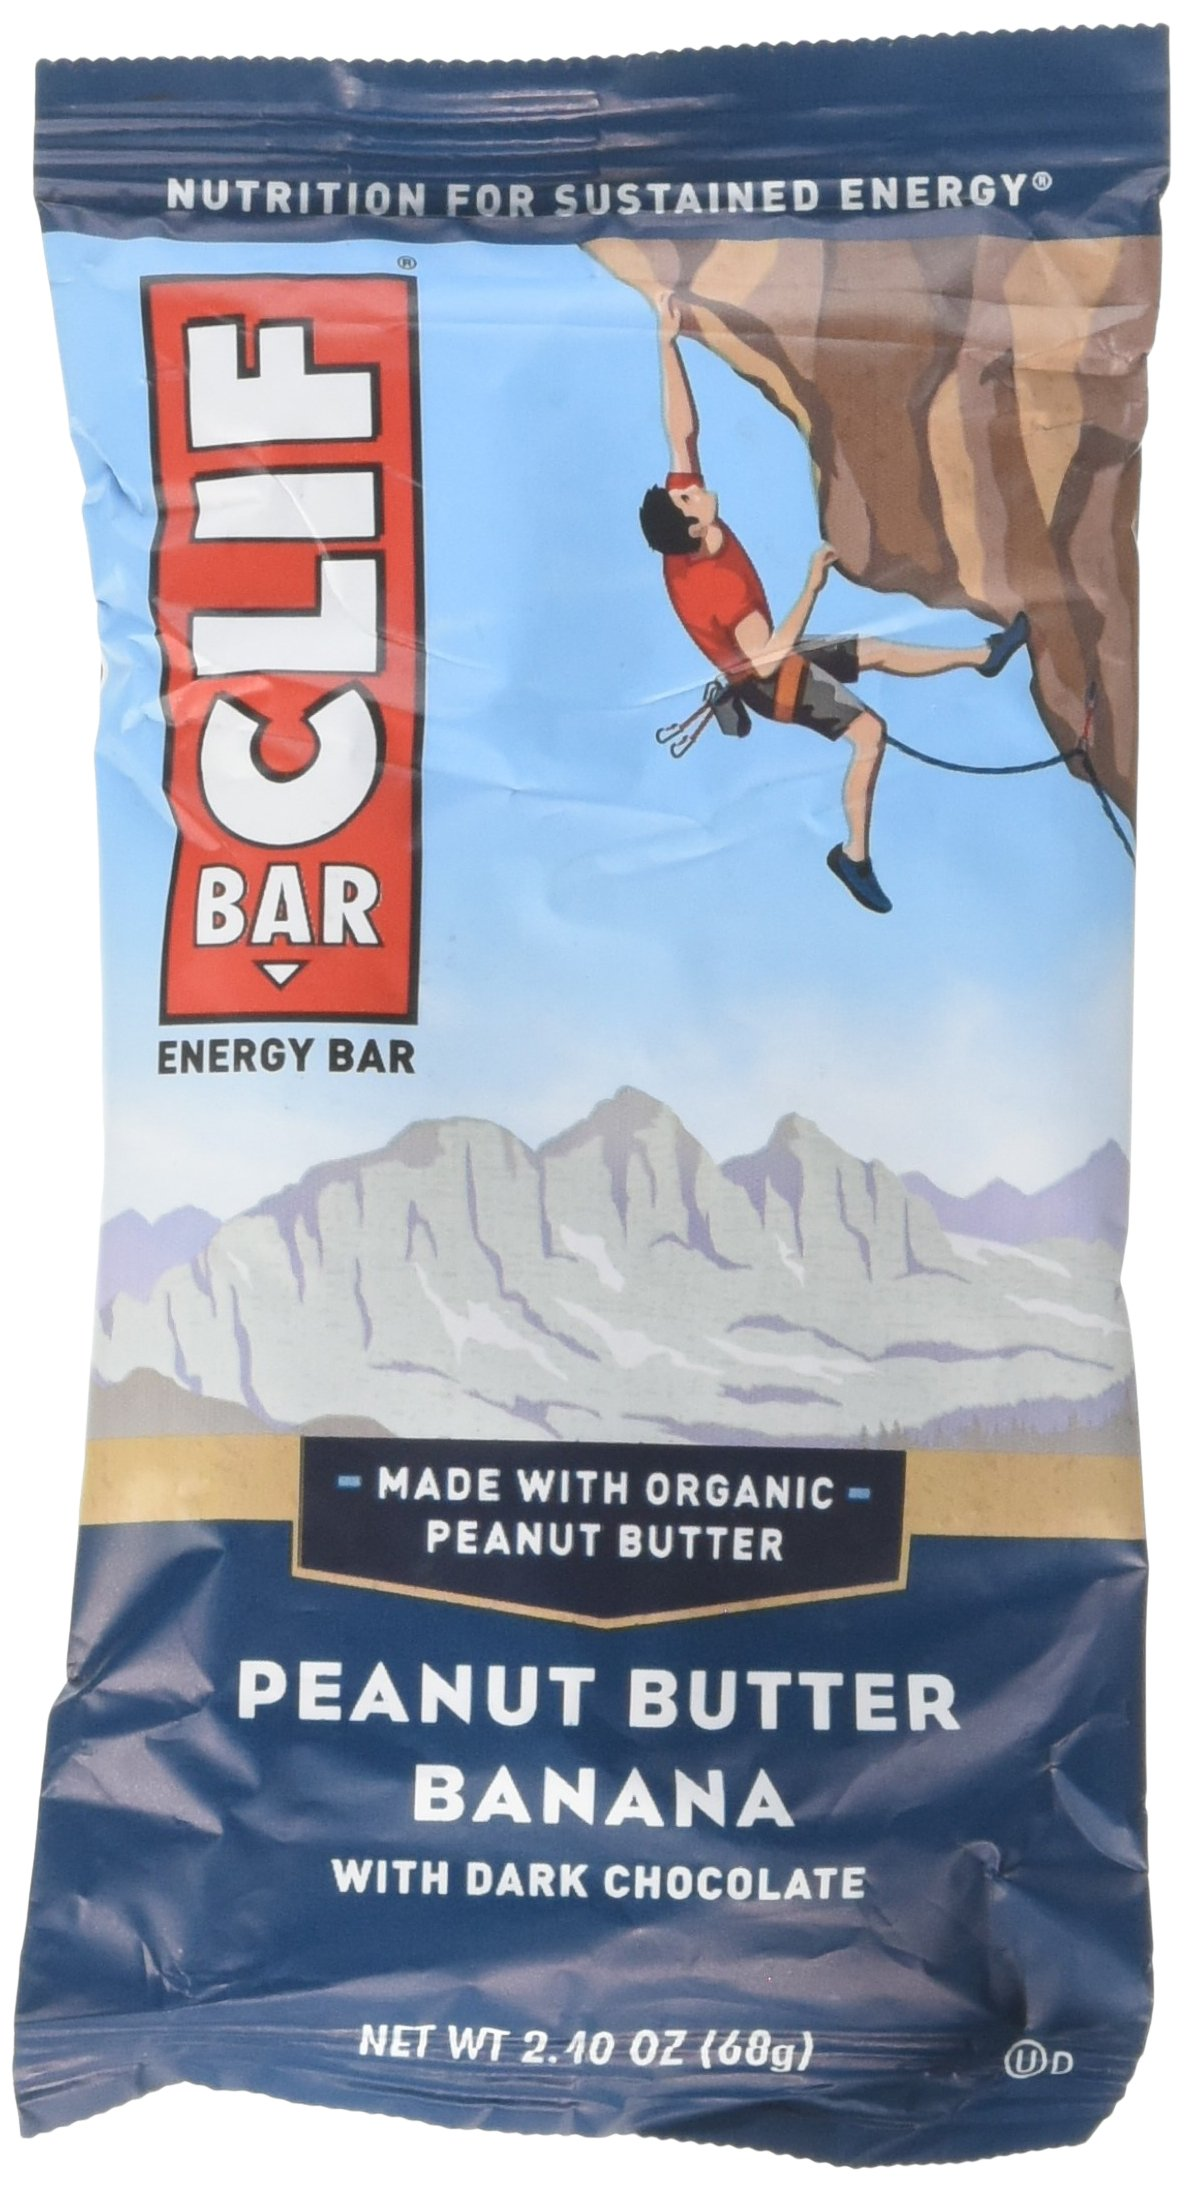 Clif Bar Peanut Butter Banana dark chocolate, 2.4 oz